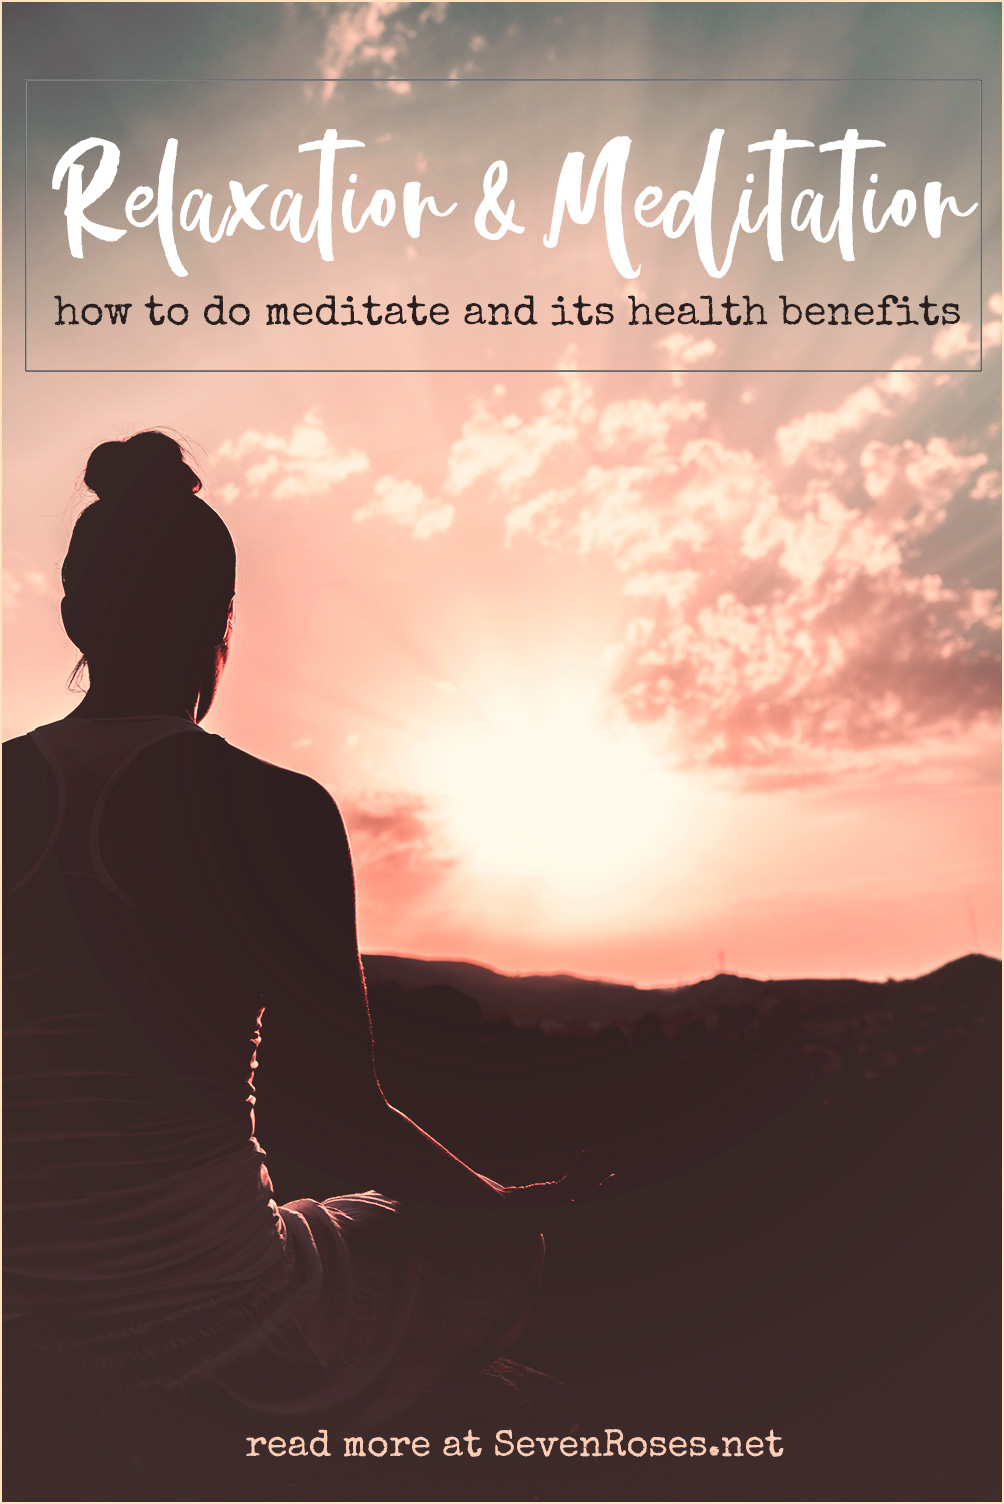 Relaxation and Meditation: how to do meditate and its health benefits